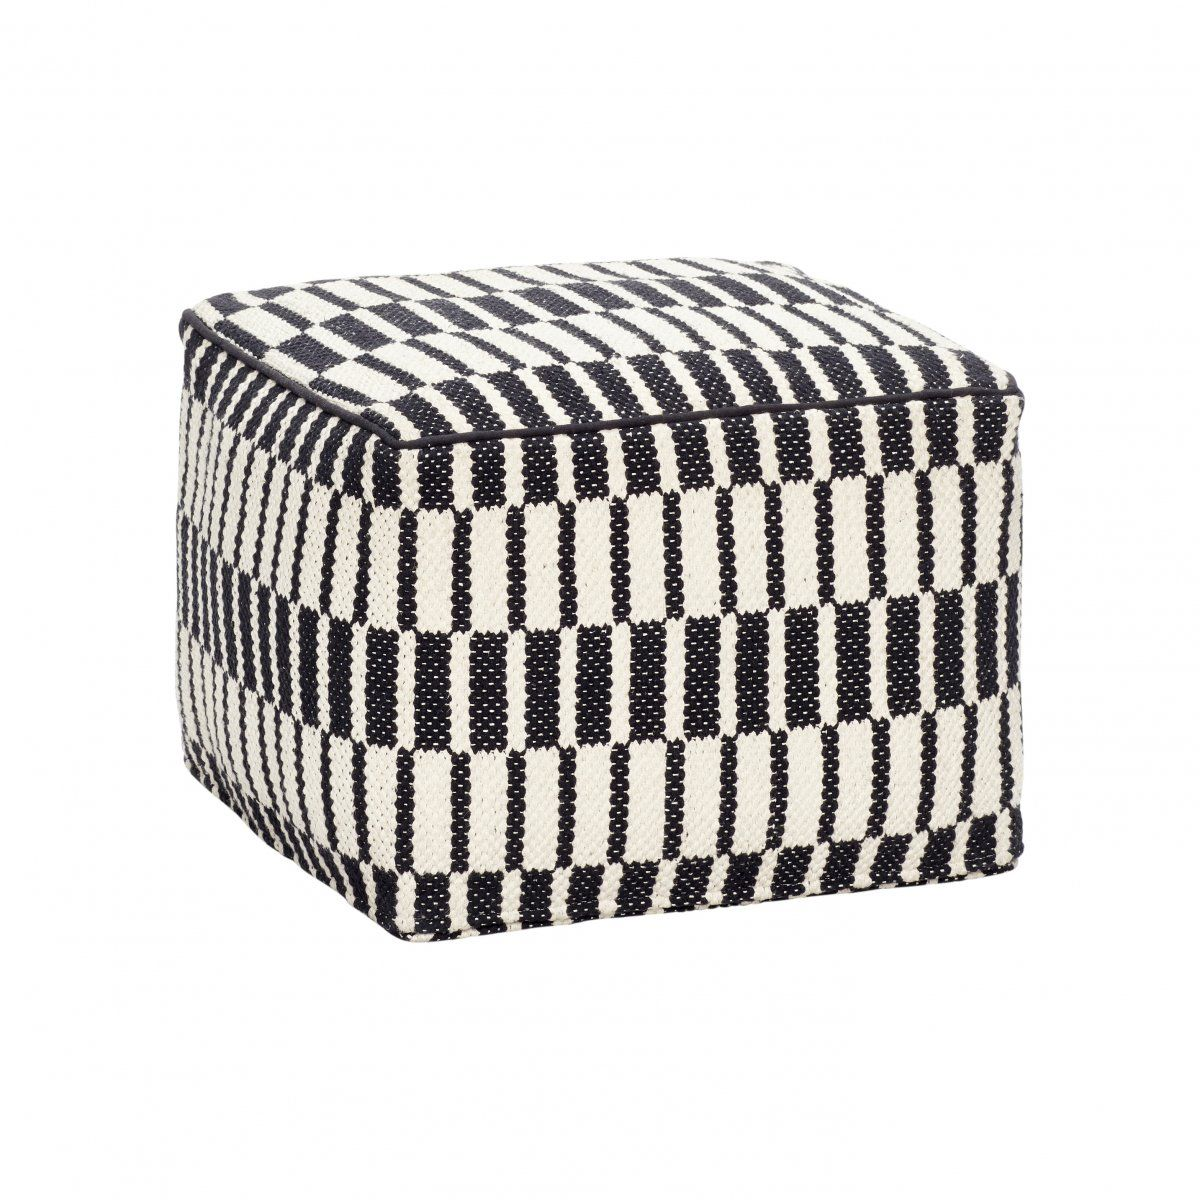 HYGGE Design Puf, siedzisko Pattern Square Black White